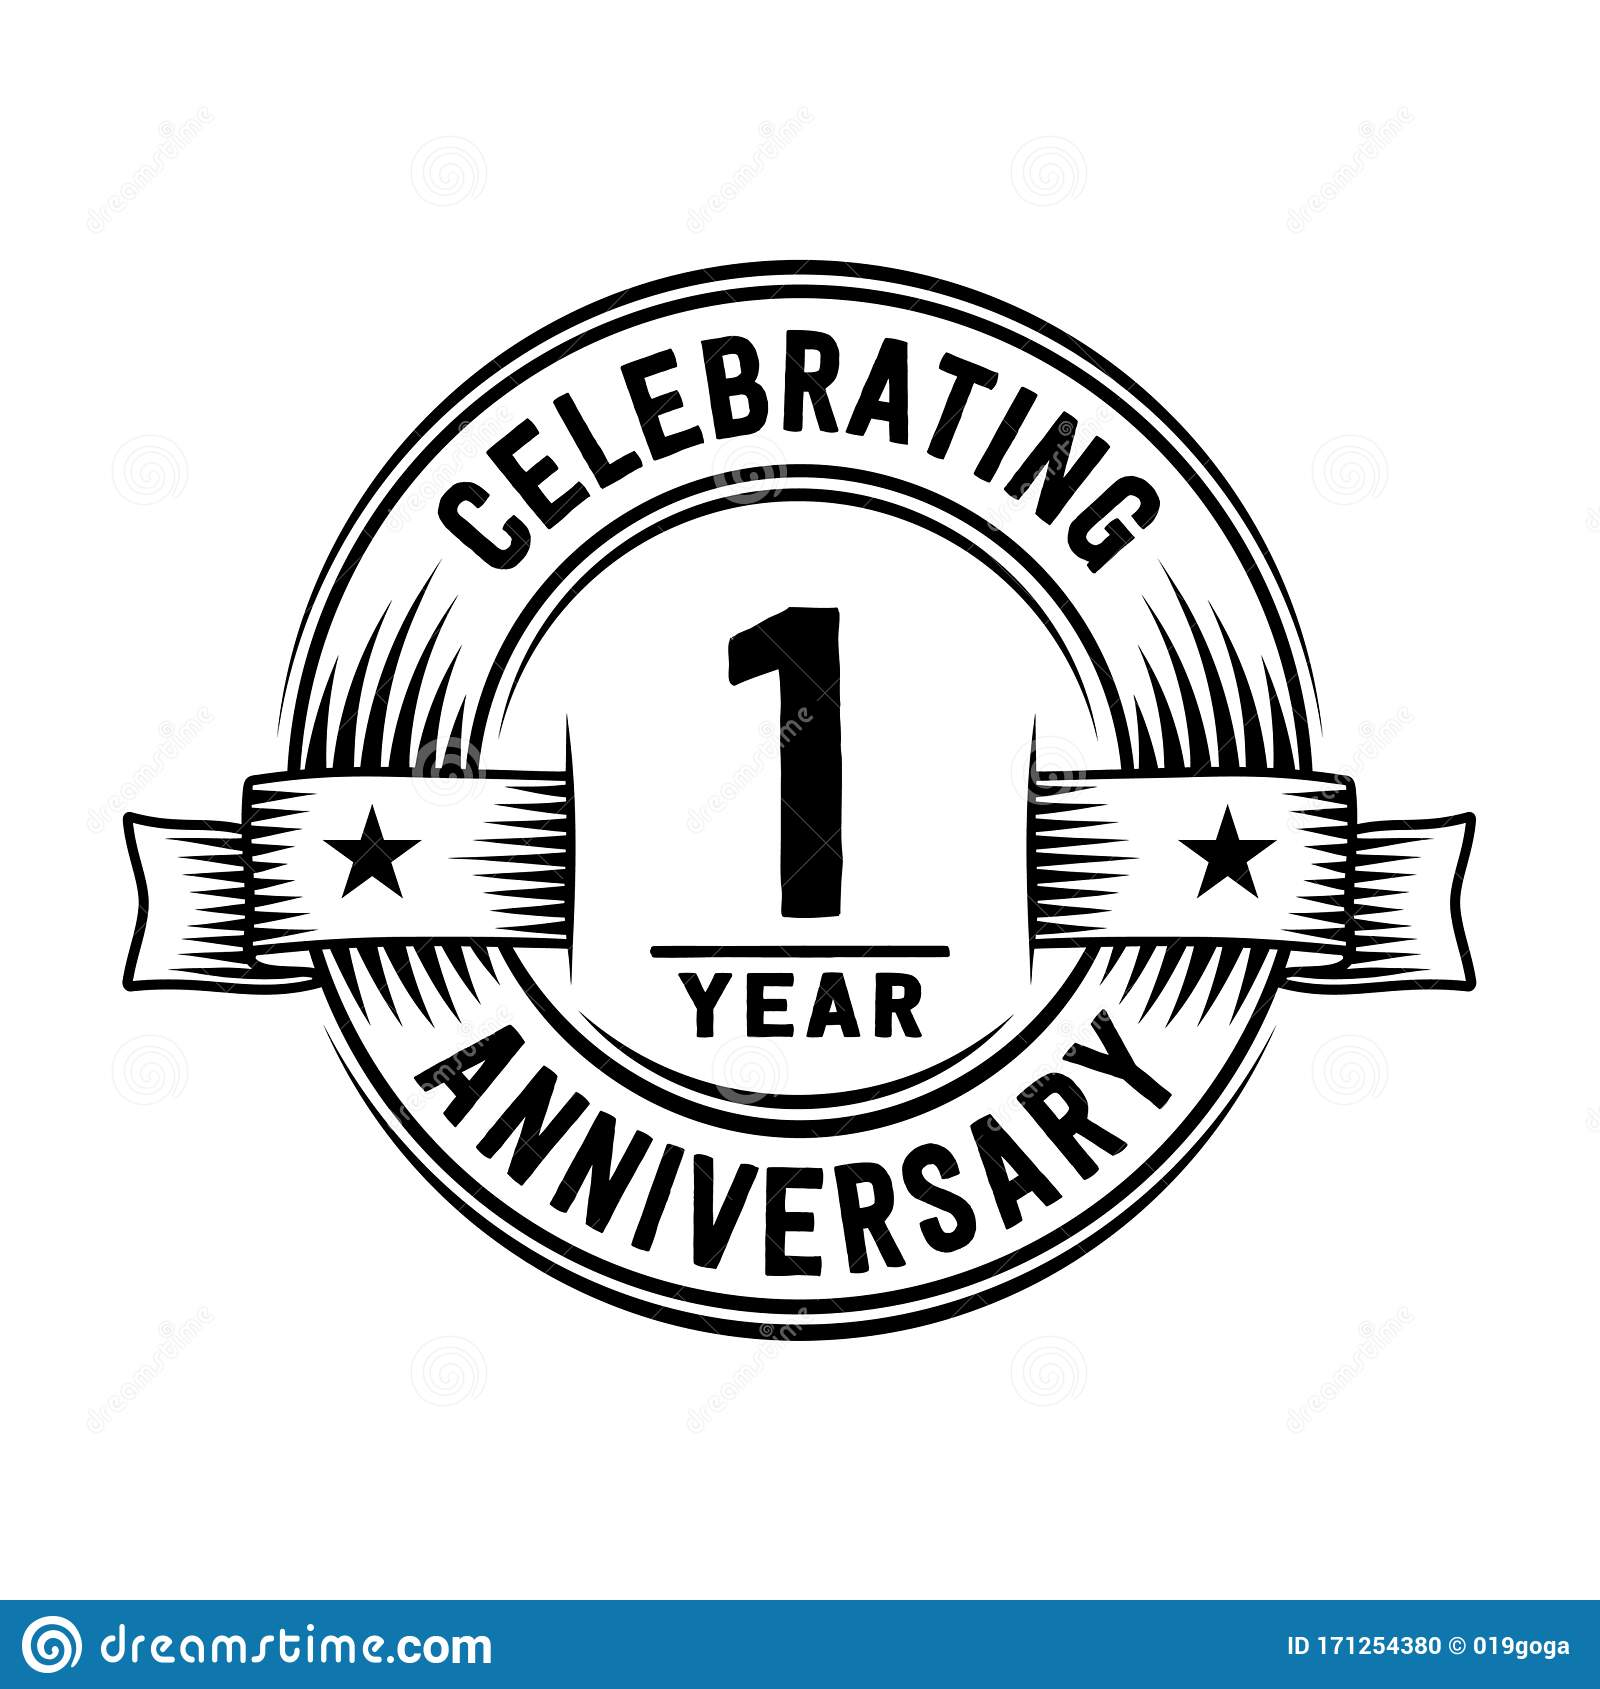 1 year anniversary celebration logotype 1st years logo vector and illustration stock vector illustration of business mark 171254380 https www dreamstime com year anniversary celebration logotype st years logo vector illustration design template one first image171254380